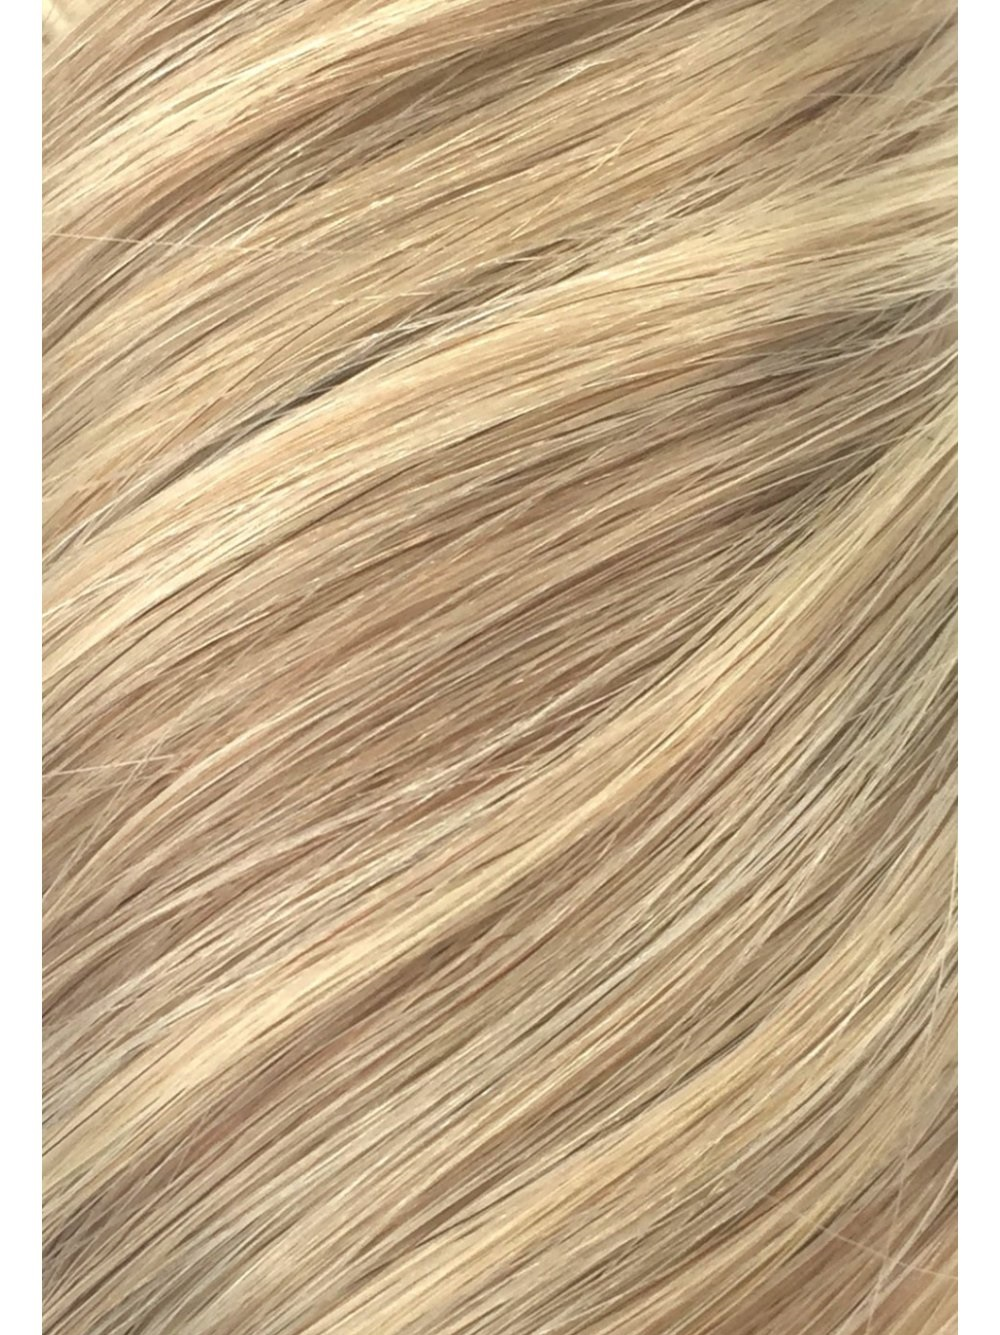 Foxy Locks Latte Blonde Hair Extensions Review